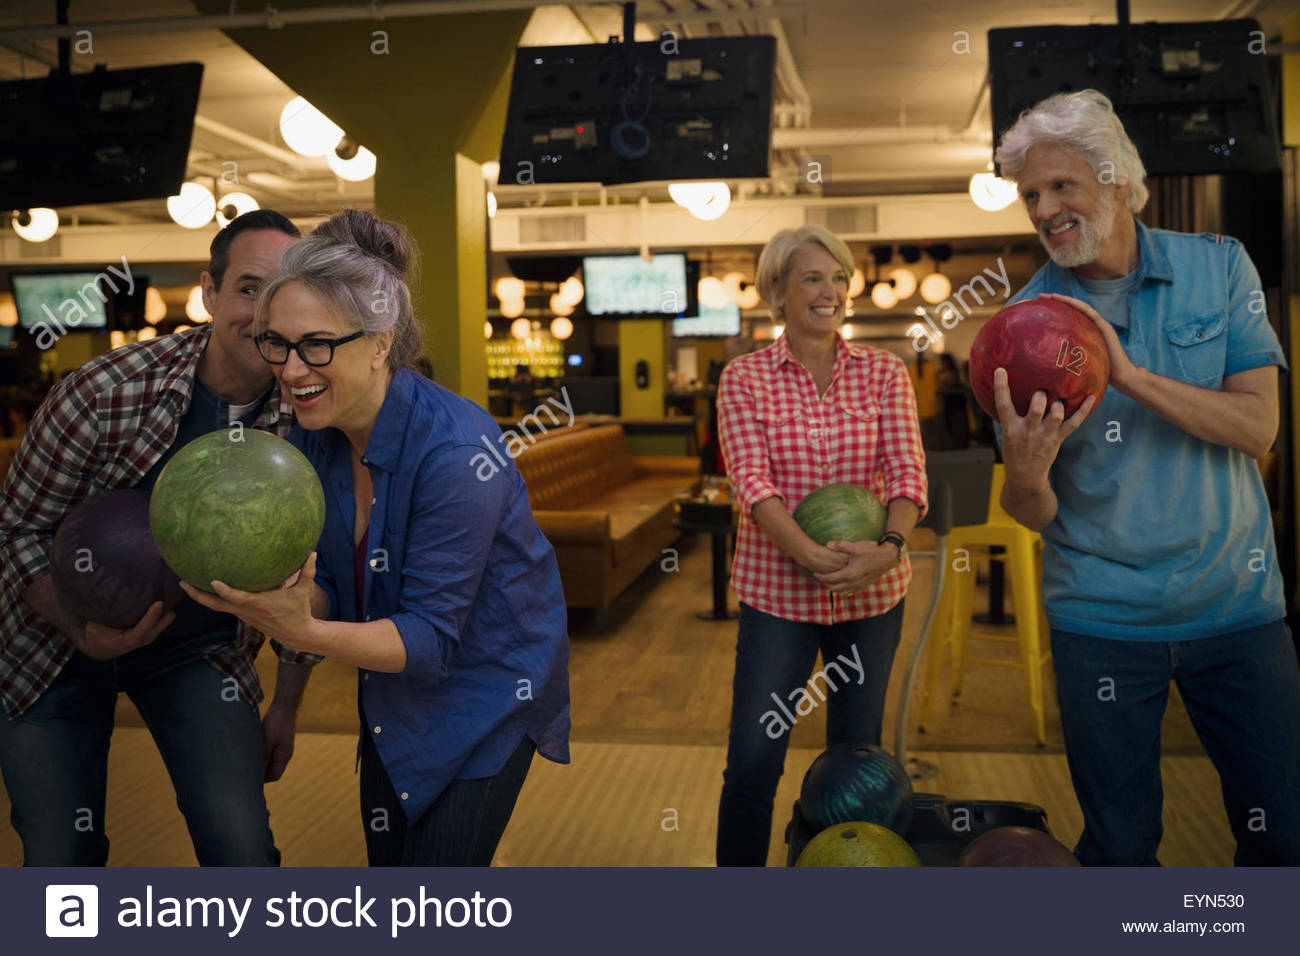 Friends bowling at bowling alley Stock Photo